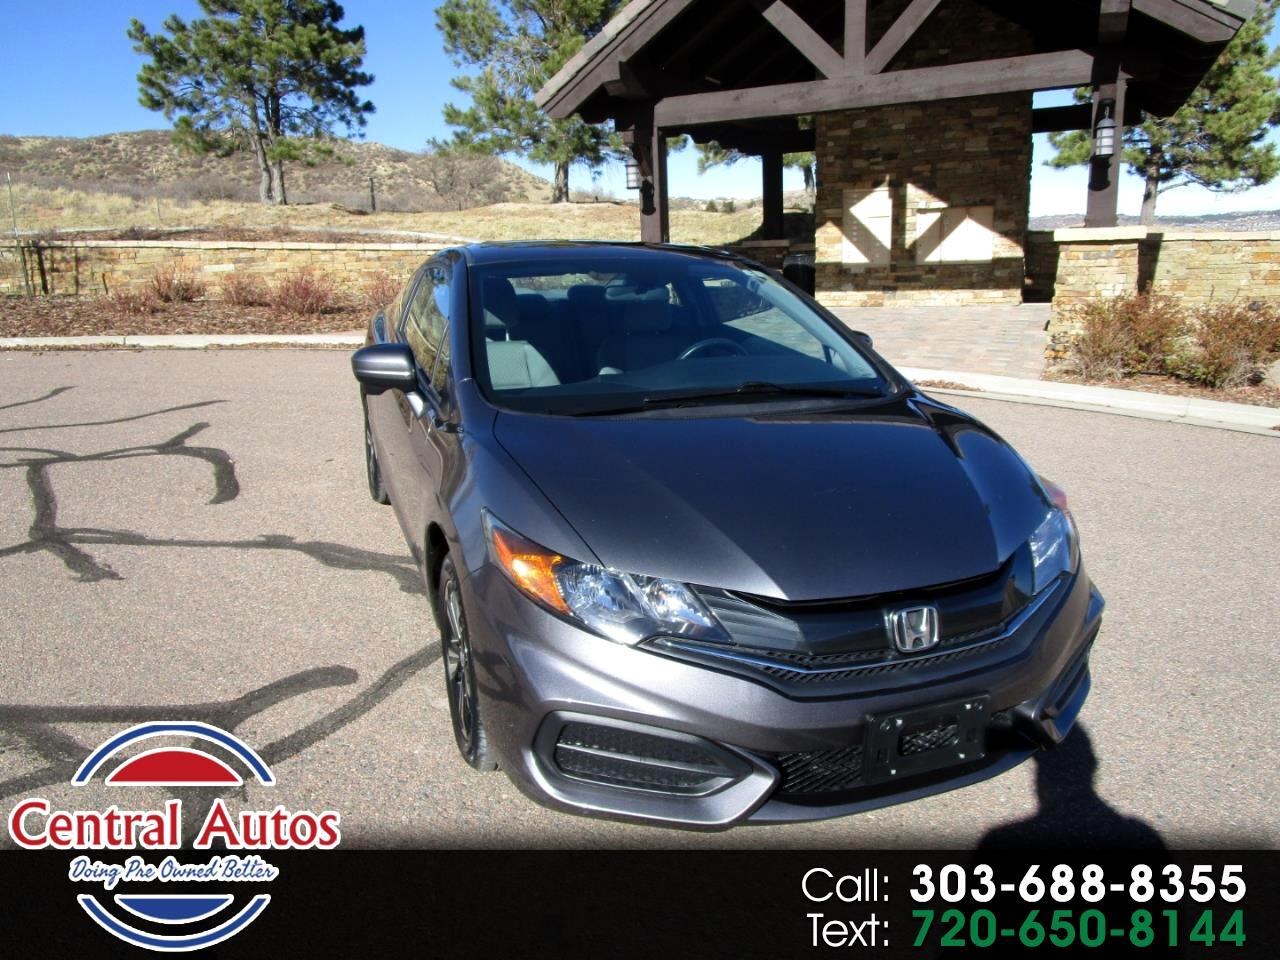 2015 Honda Civic Coupe 2dr CVT EX